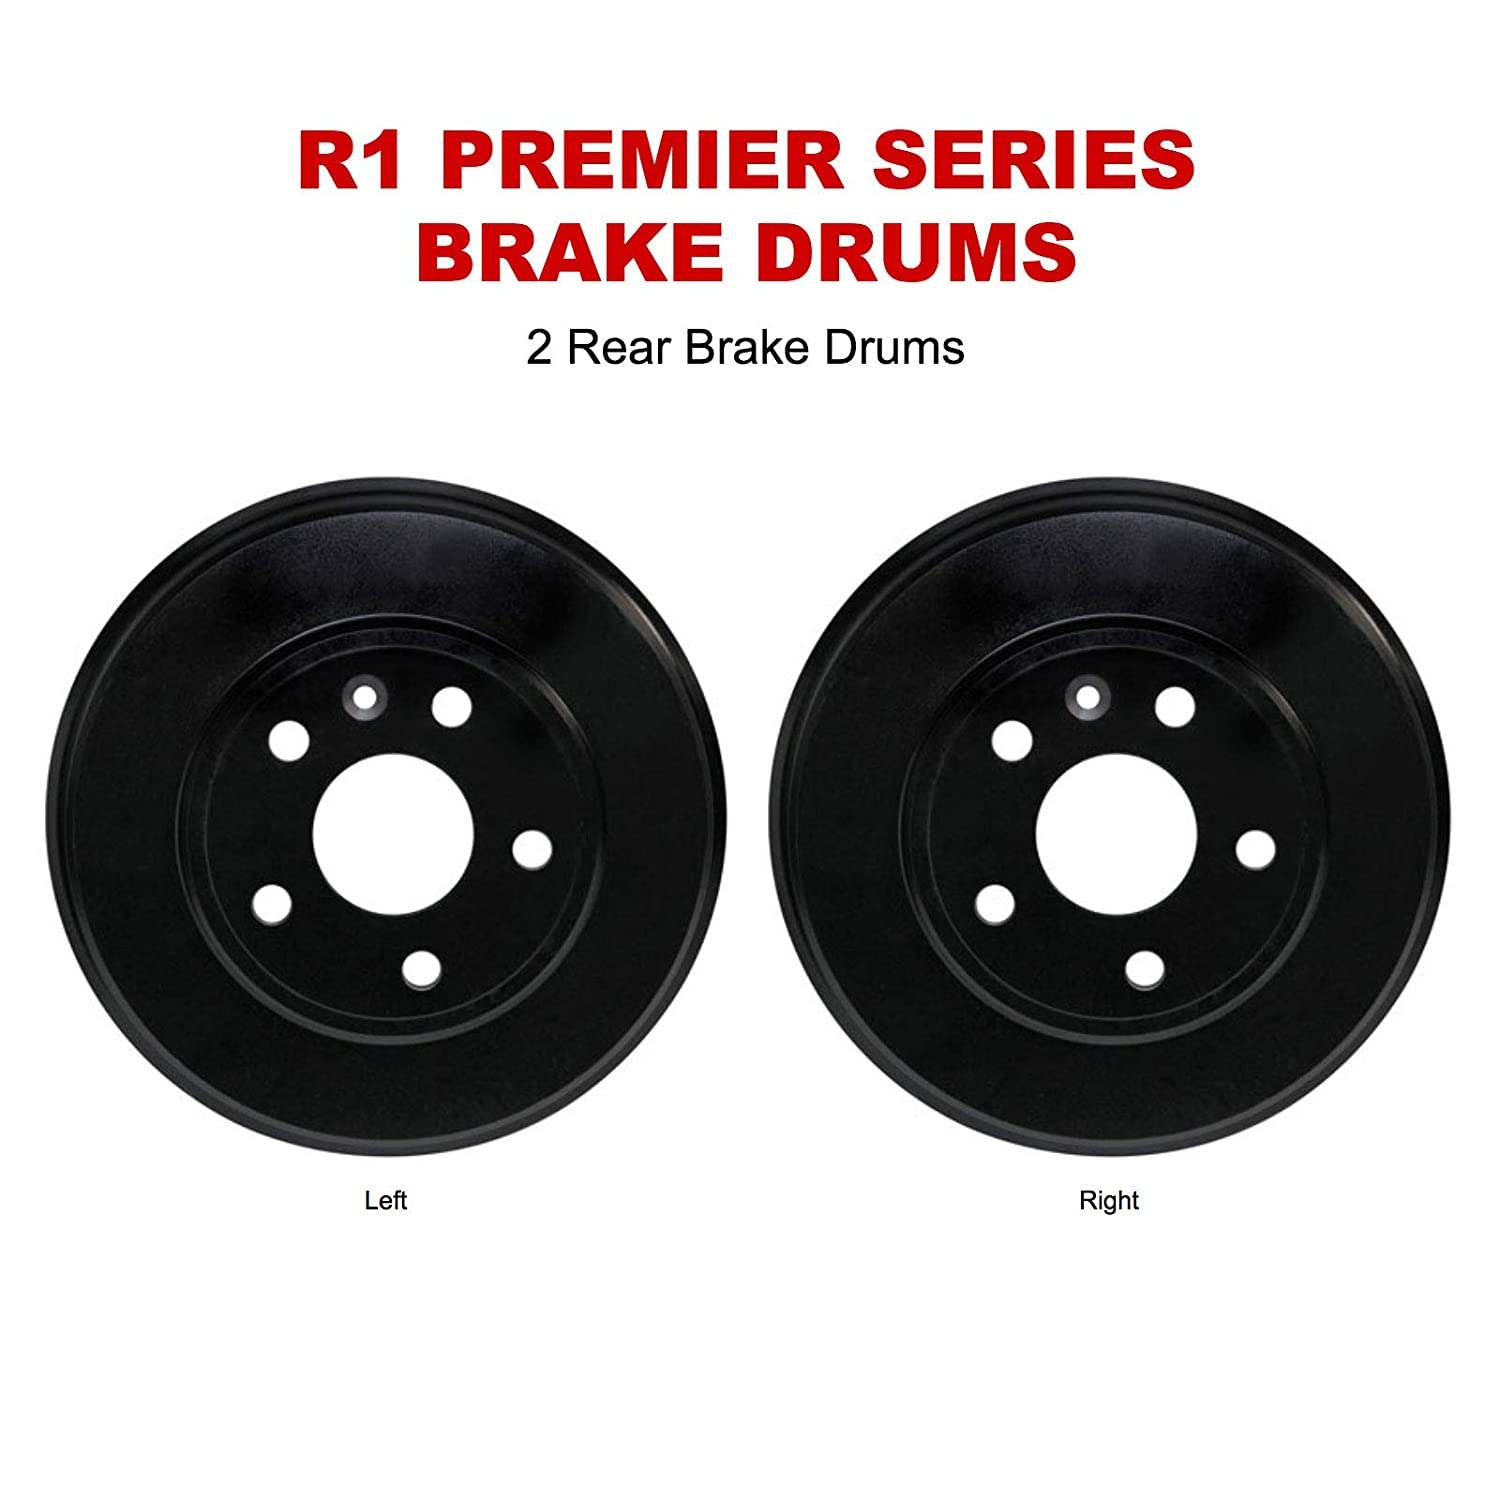 For 2013-2015 Nissan Sentra R1 Concepts Brake Drums Rear Pair